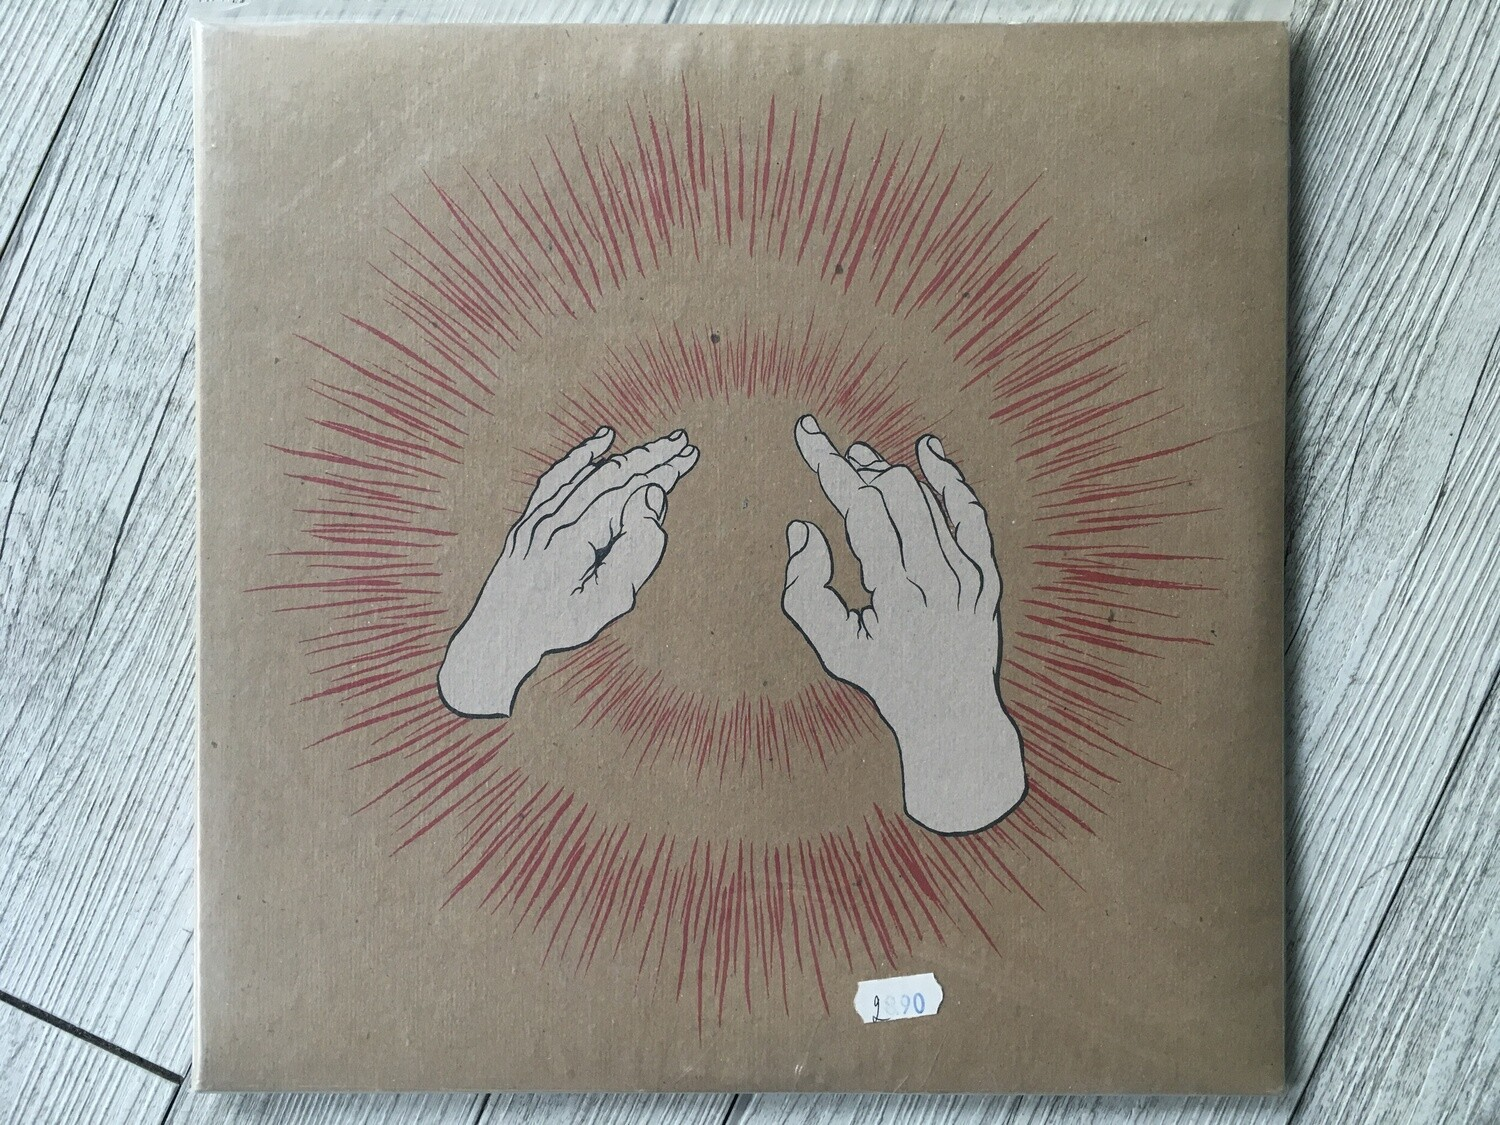 GODSPEED YOU! BLACK EMPEROR – Lift Your Skinny Fists Like Antennas To Heaven